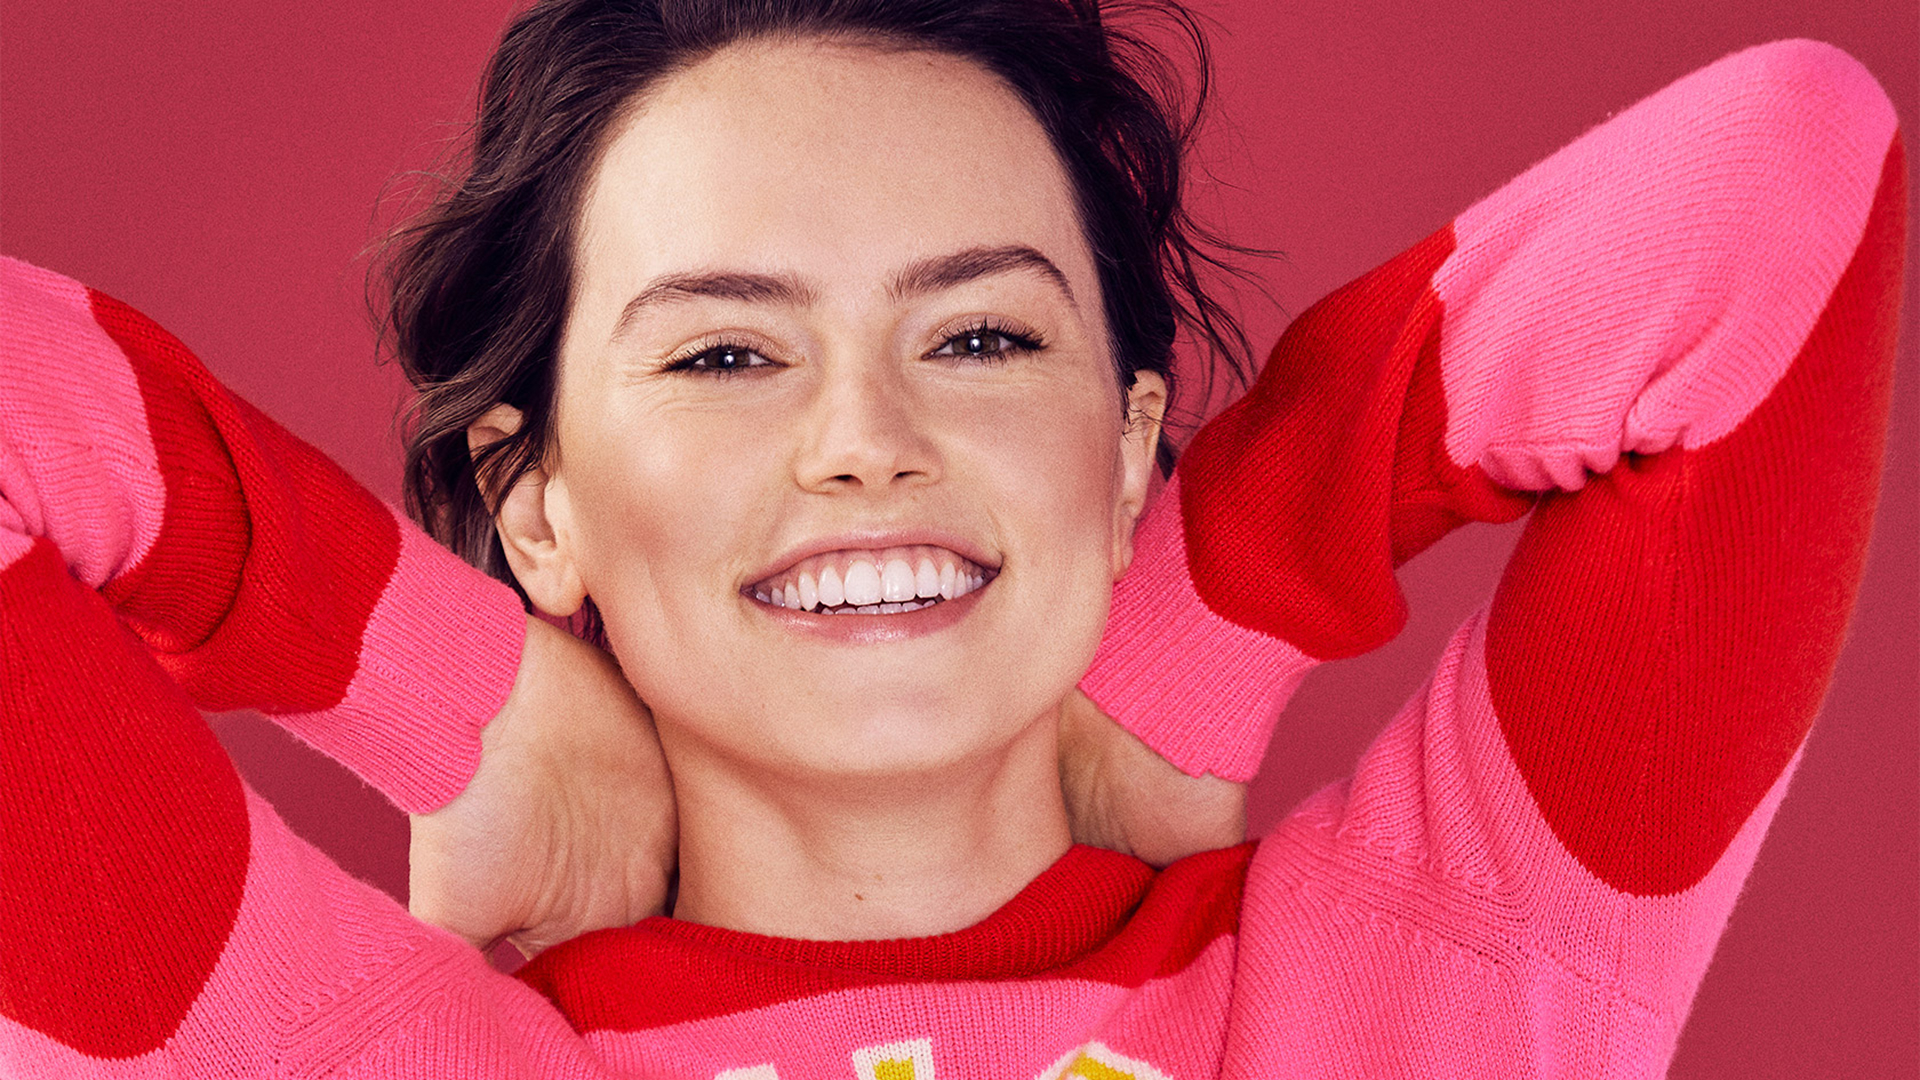 1920x1080 Cute Daisy Ridley 1080P Laptop Full HD Wallpaper HD 1920x1080